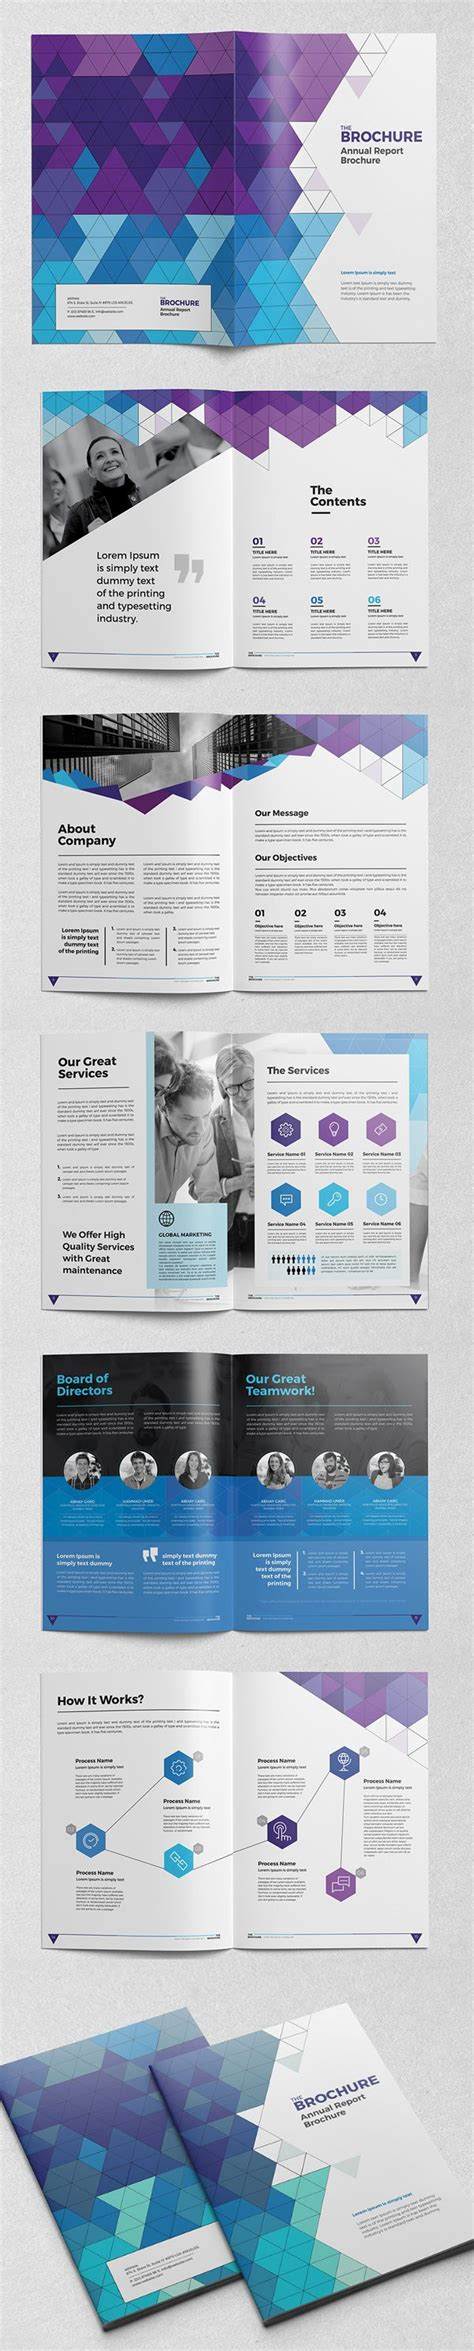 web layout indesign 1000 ideas about brochure design on pinterest tri fold